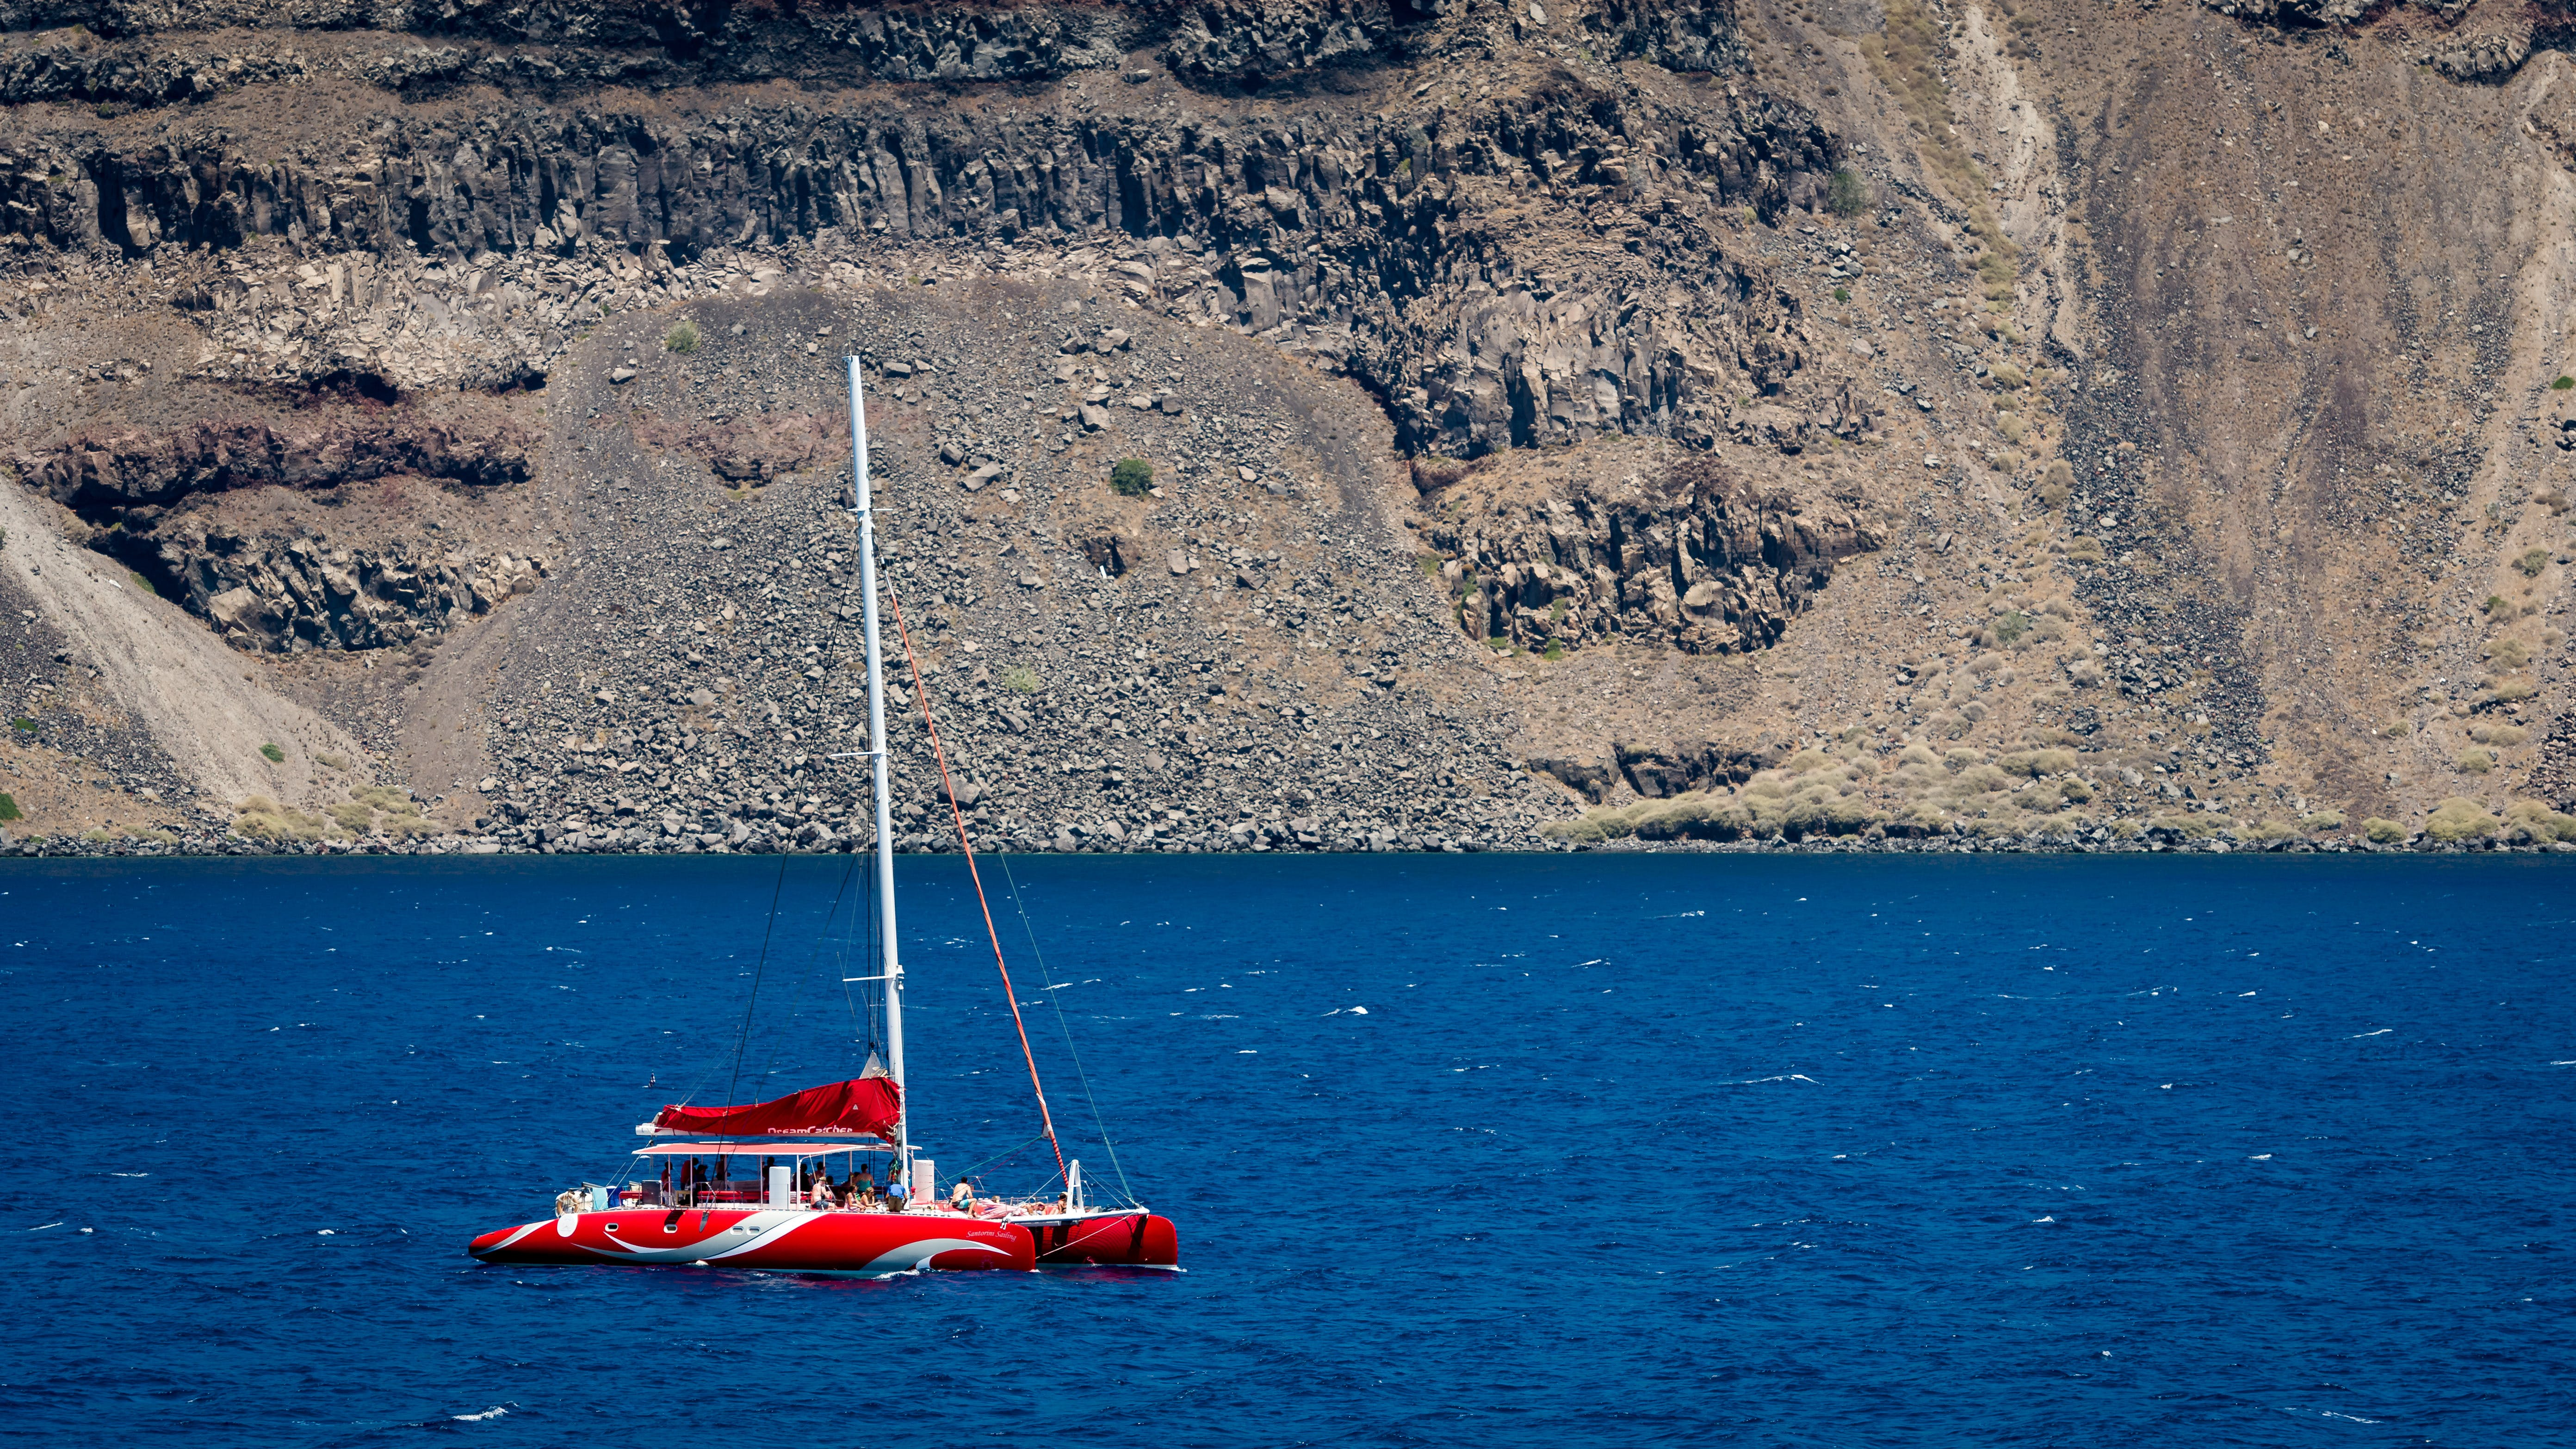 Photography of Red Sailing Boat on Sea